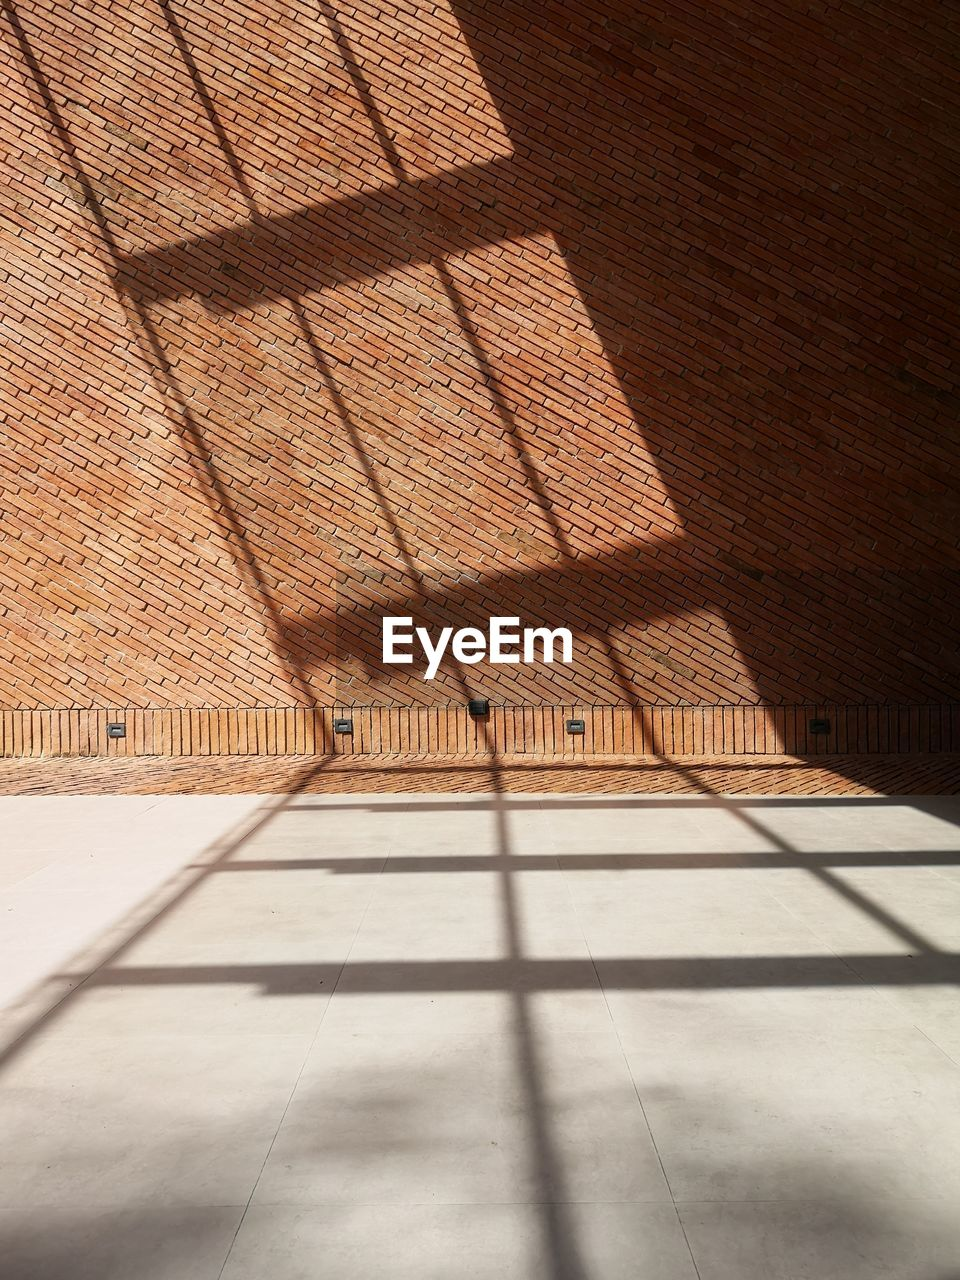 shadow, sunlight, architecture, built structure, no people, day, nature, flooring, wall - building feature, building, outdoors, absence, building exterior, brick, pattern, brick wall, wall, tile, roof, focus on shadow, tiled floor